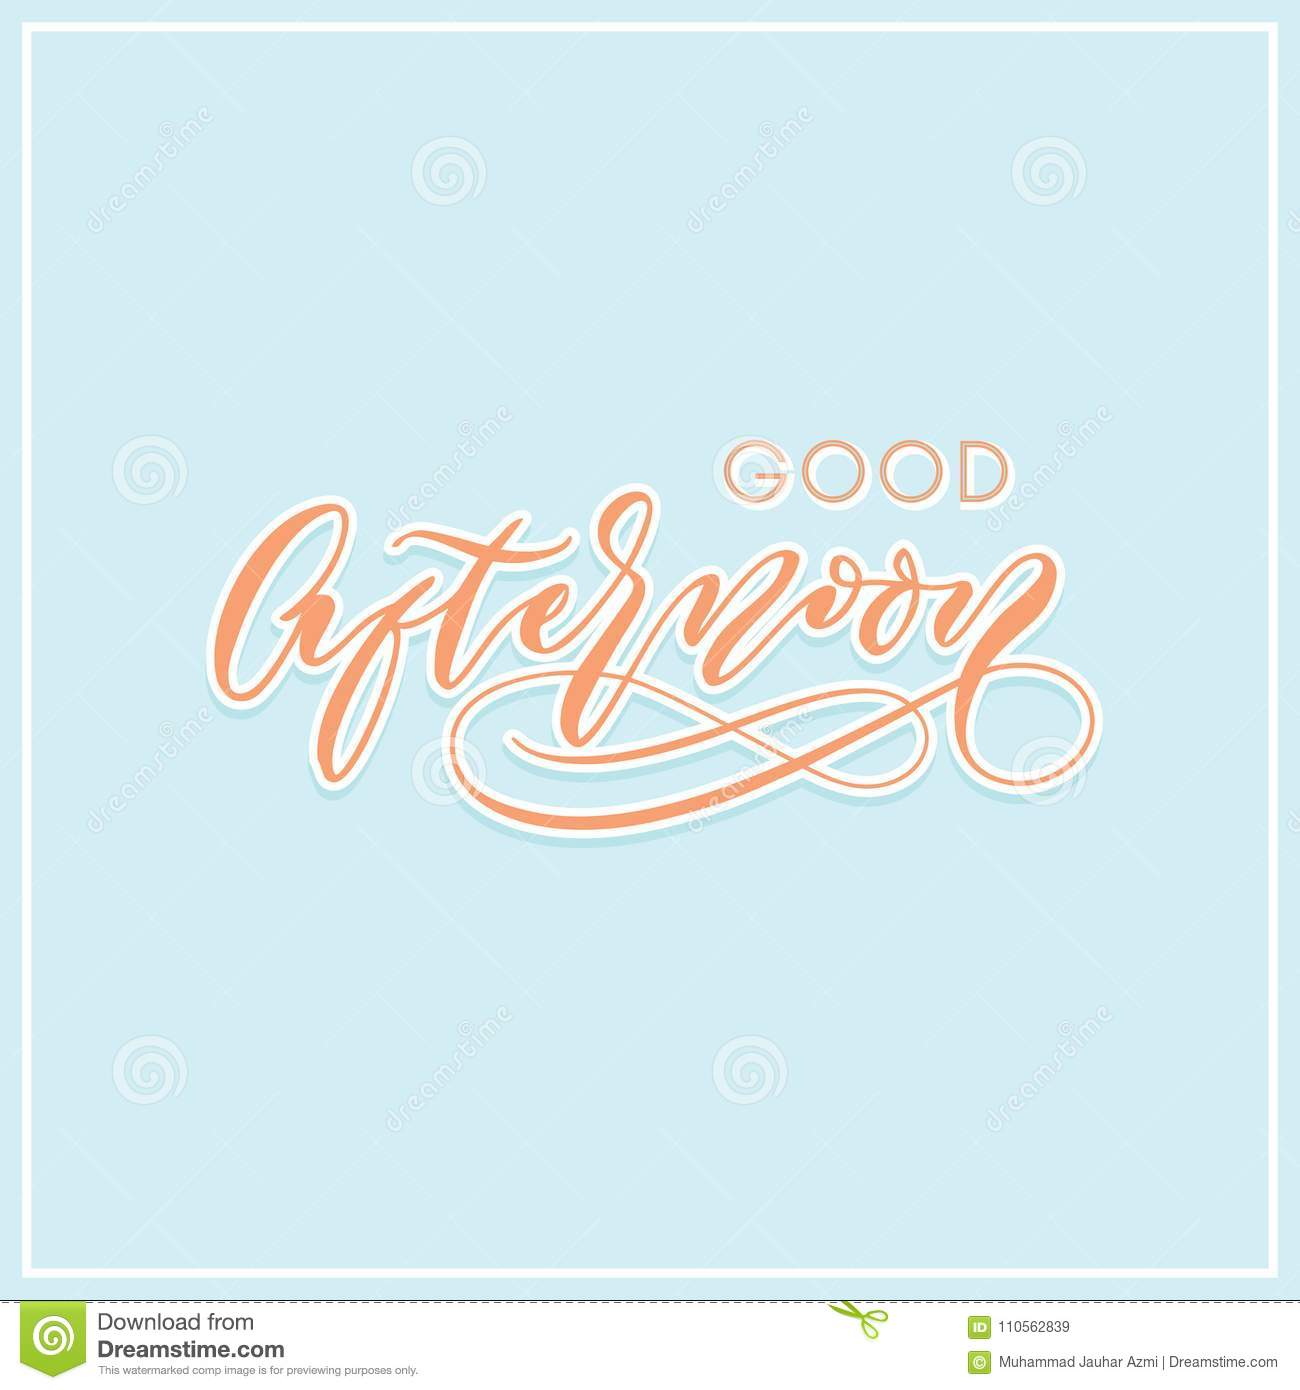 Good afternoon modern calligraphy hand lettering typography greeting download good afternoon modern calligraphy hand lettering typography greeting card design stock vector illustration of m4hsunfo